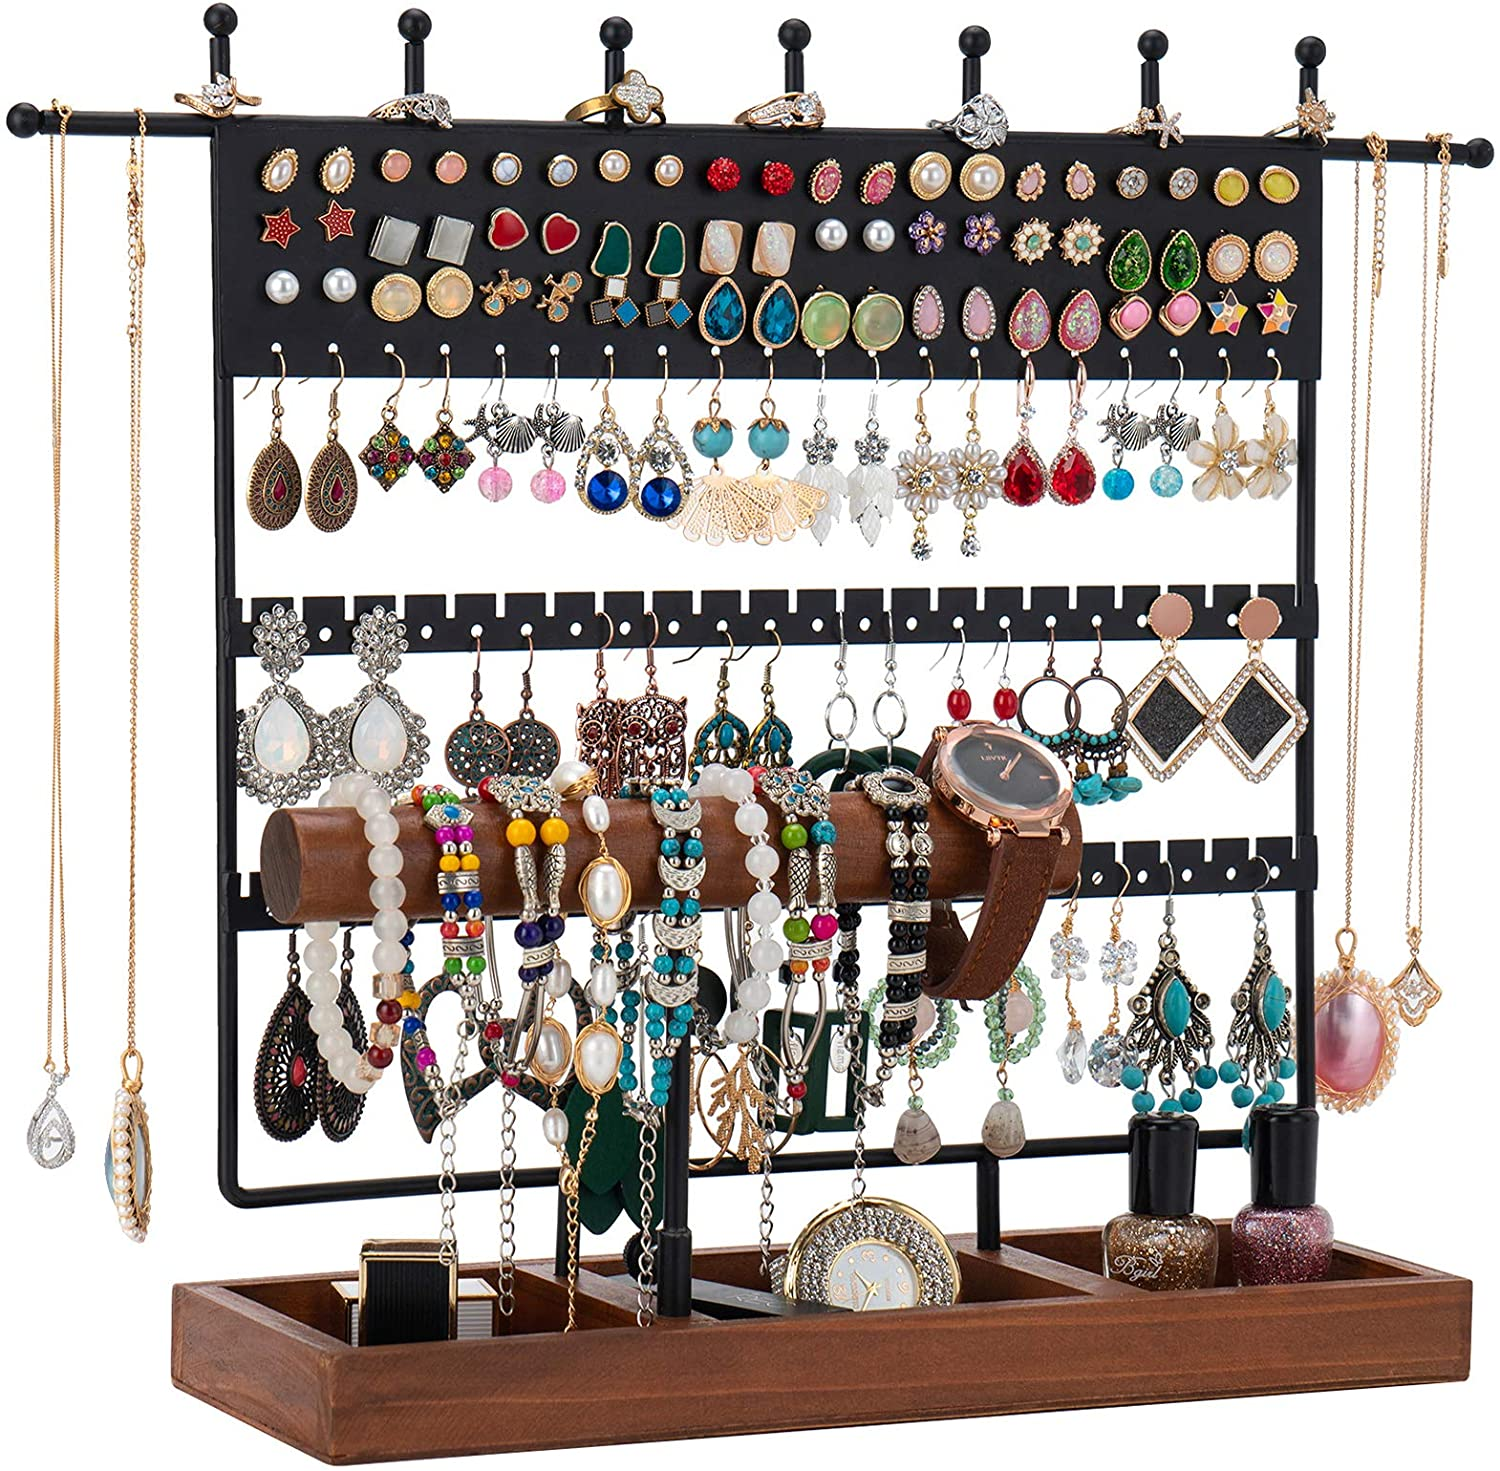 Jewelry Stand Earring Stand QILICHZ Earring Organizer 124 Holes Earring Holder T bar Jewelry Holder Jewelry Organizer Jewelry Tower Rack with Wooden Tray for Home Use and Jewelry Display 124 holes, Black